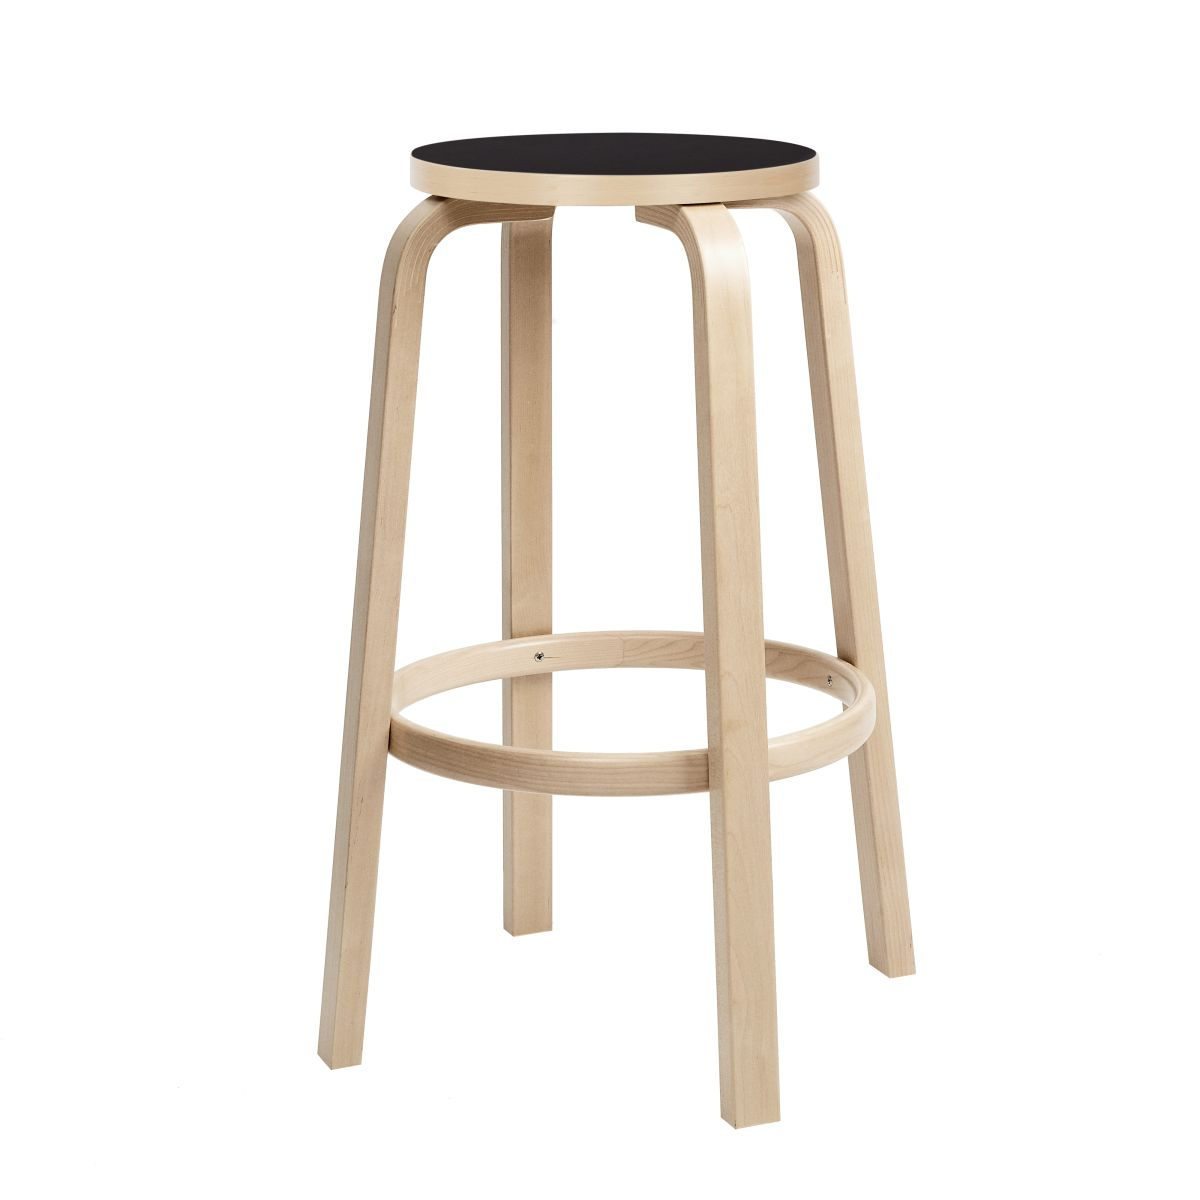 Bar-Stool-64-75Cm-Legs-Birch_Top-Black-Linoleum_Srgb-2430524